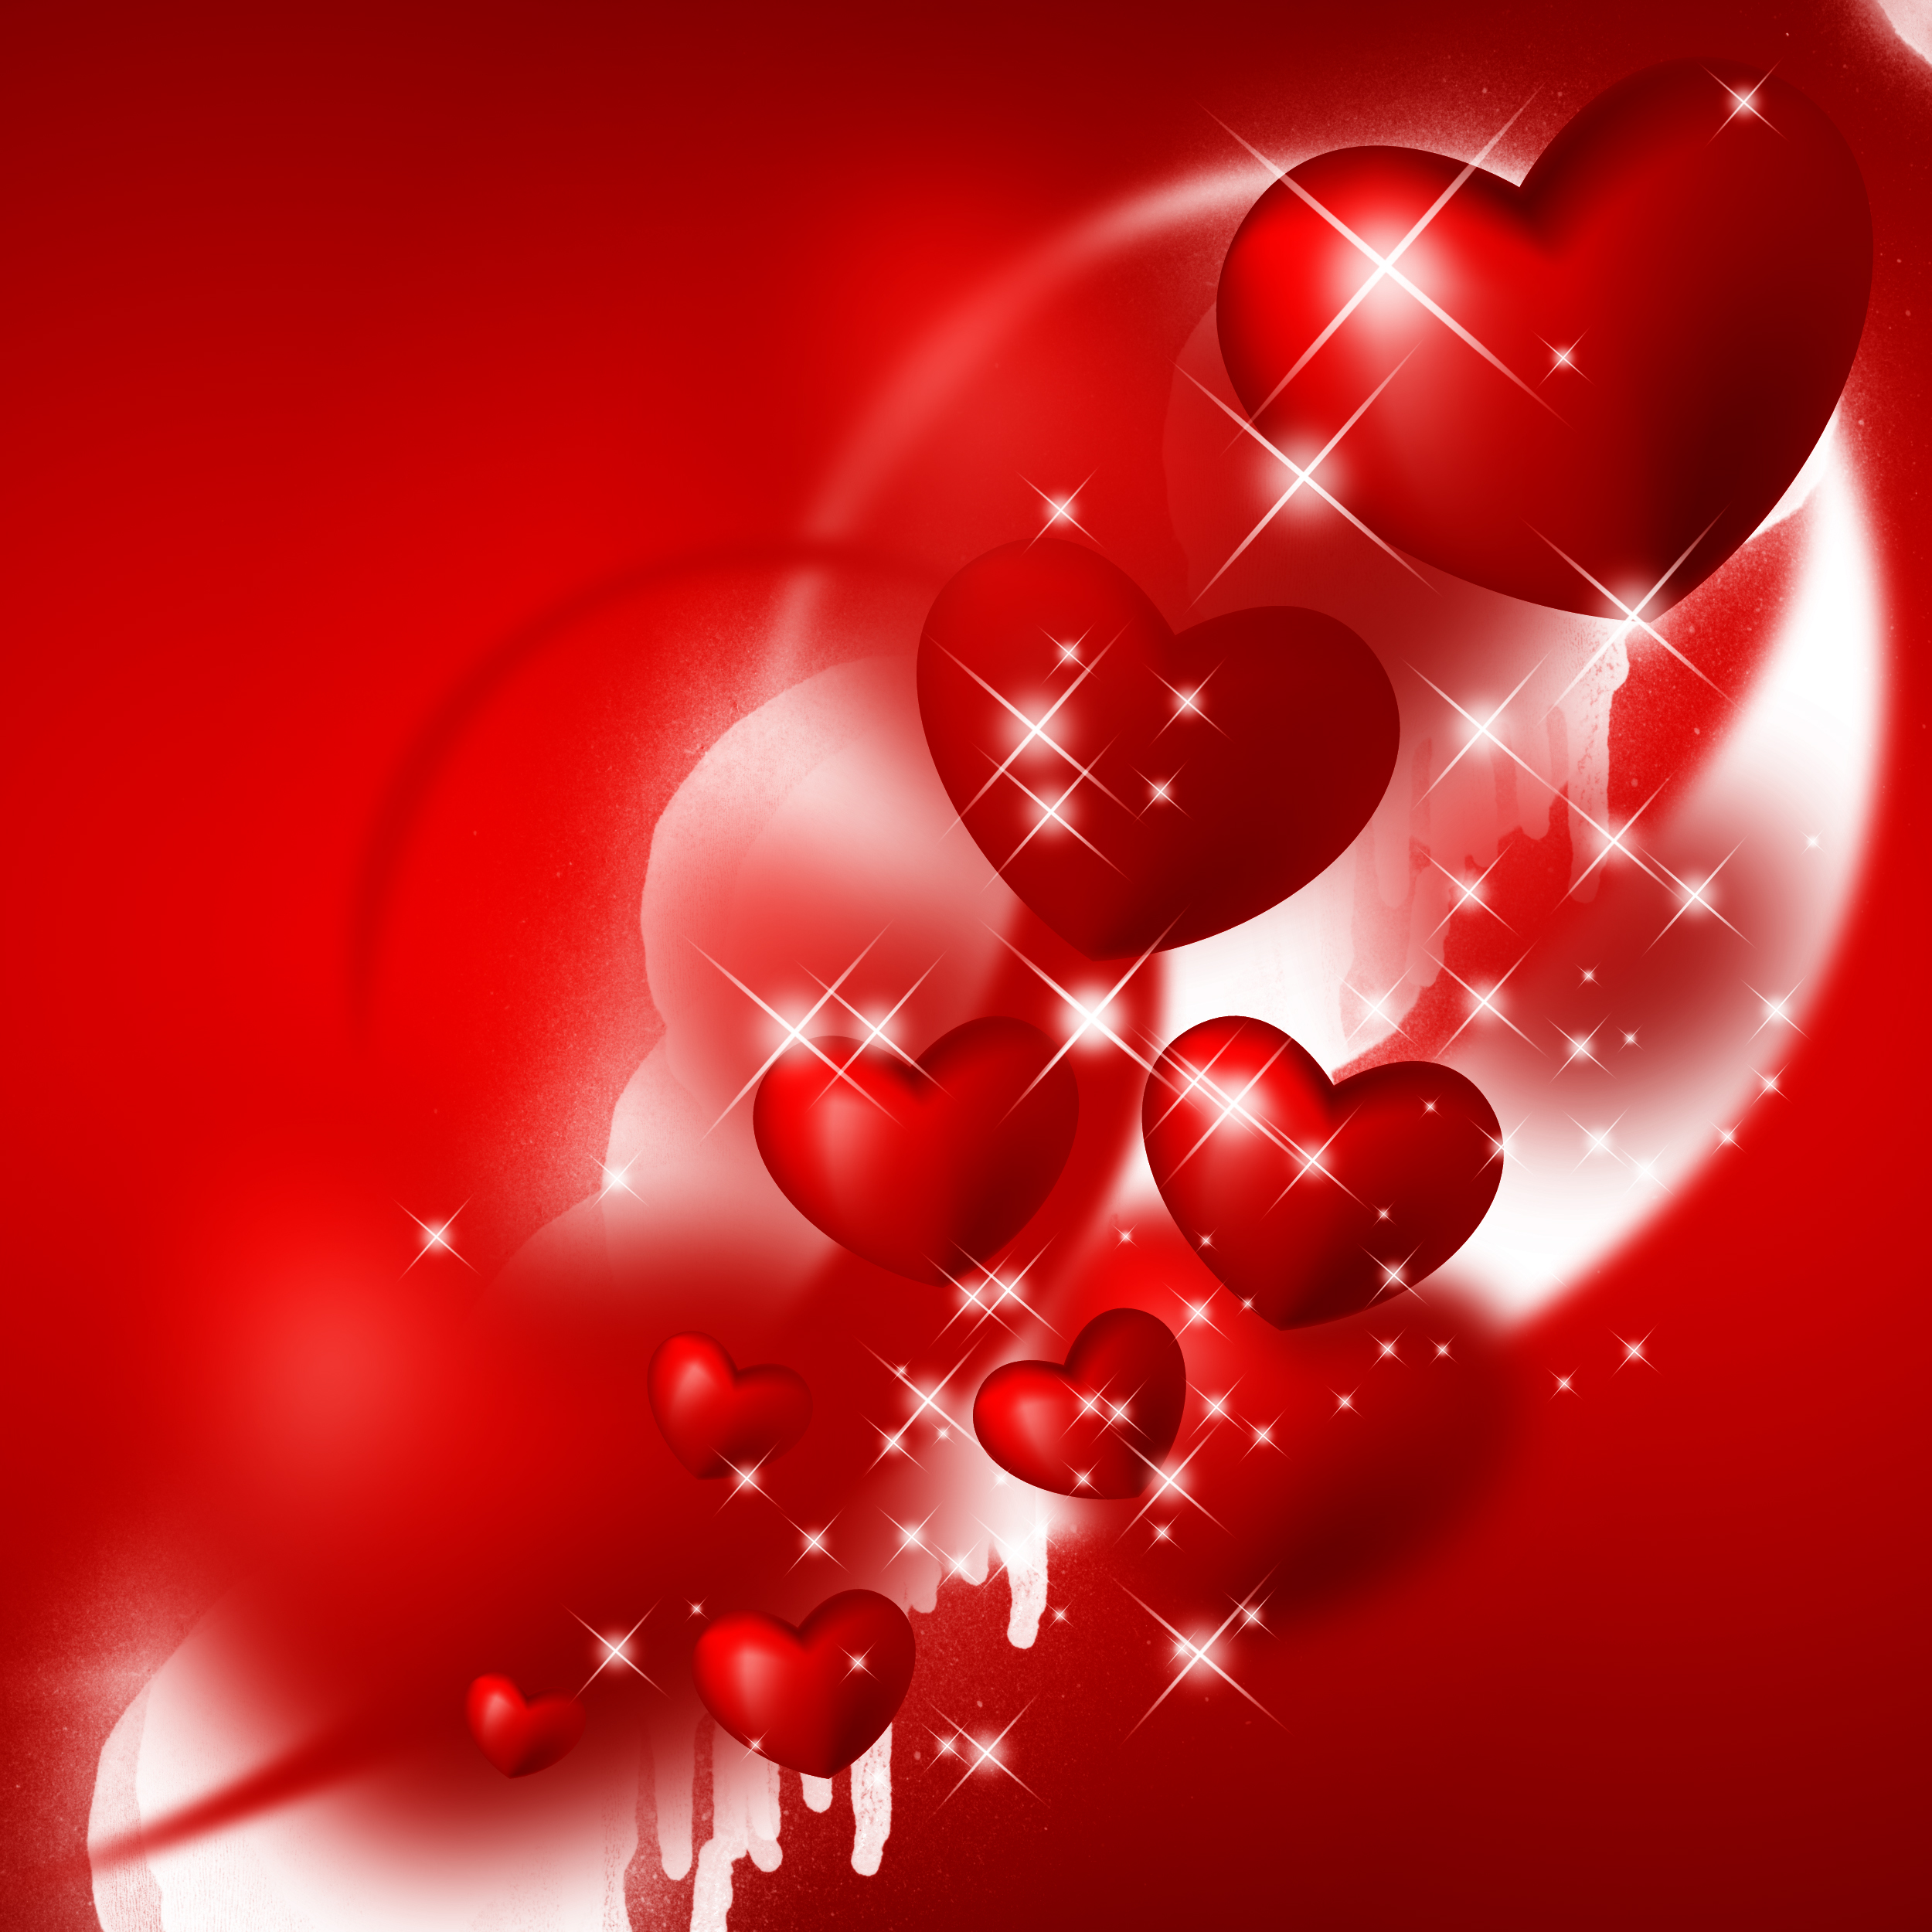 Valentine backgrounds and wallpaper wallpapersafari - Cute valentines backgrounds ...